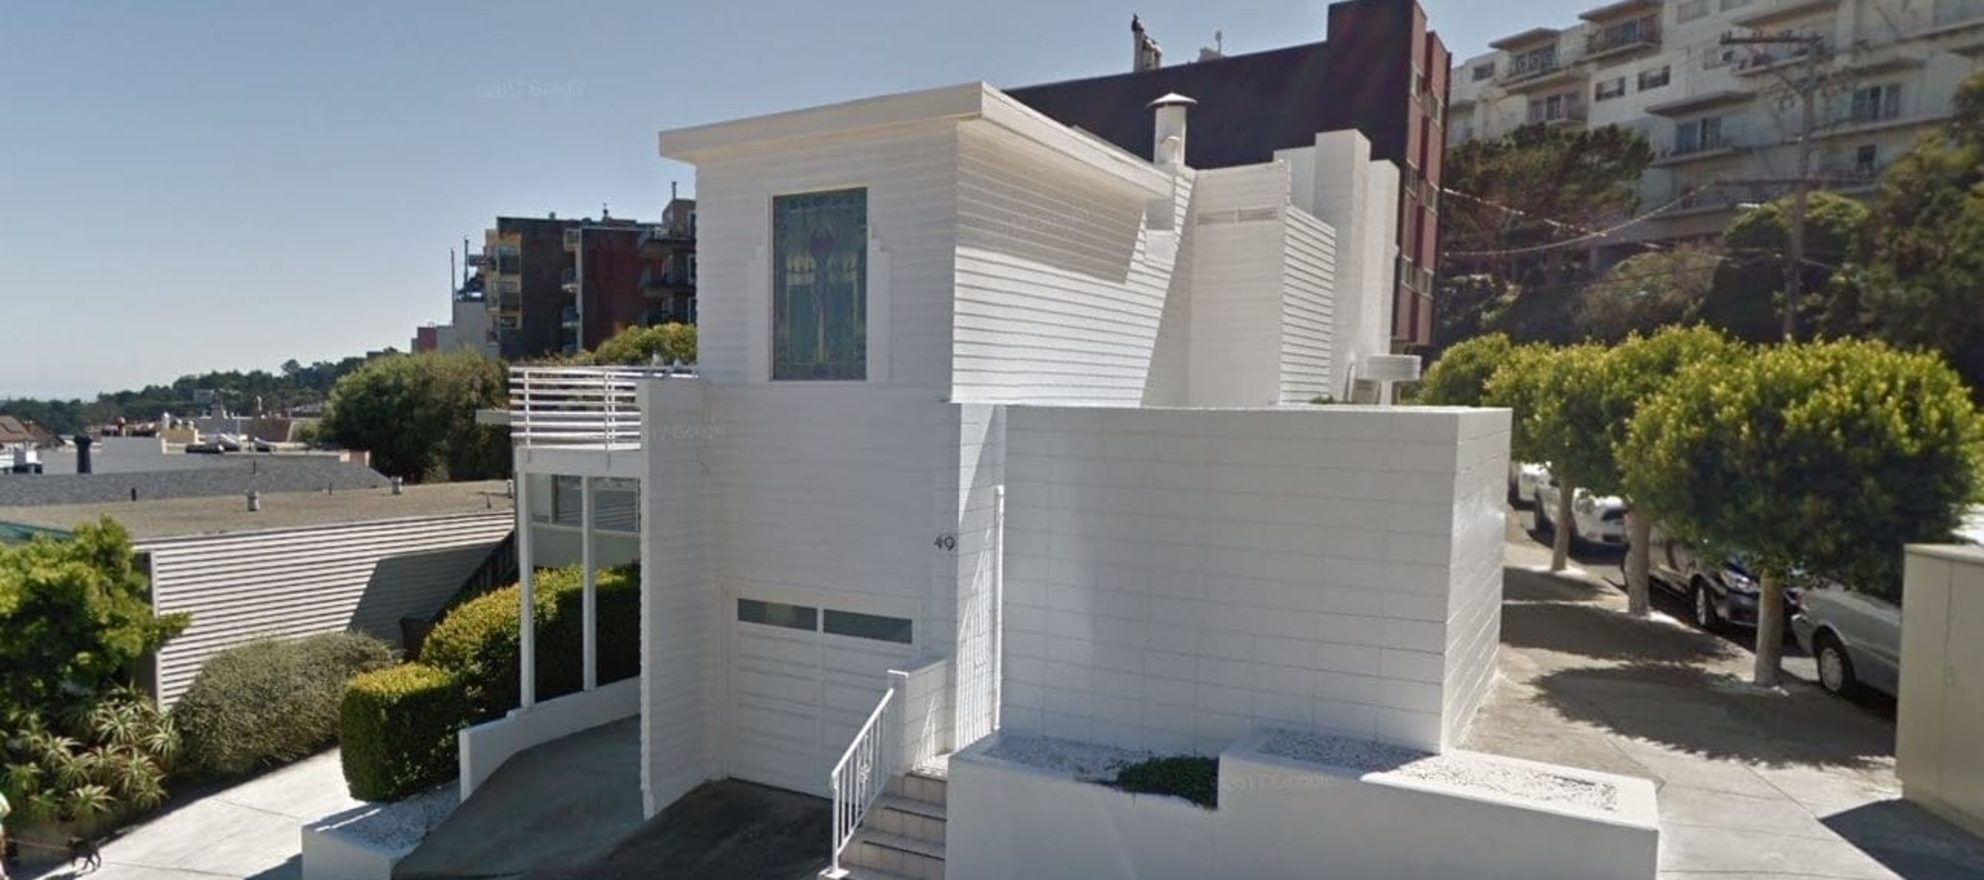 After tearing down his own historic home, developer is ordered to build an exact replica